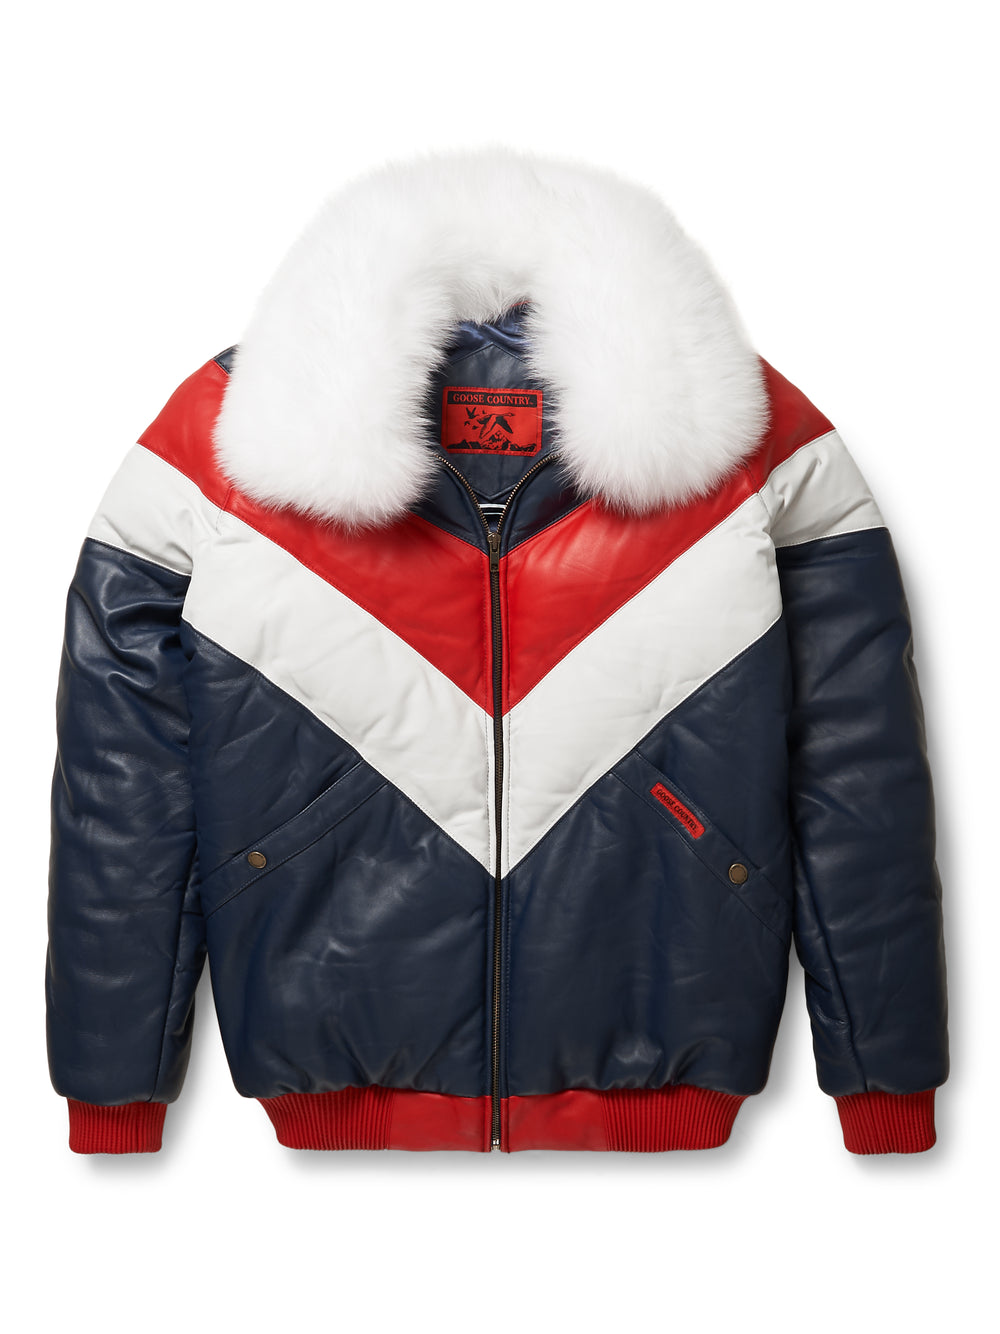 9a408a4a916 Goose Country V-Bomber Leather Jacket Two-Tone: Red/White/Blue ...